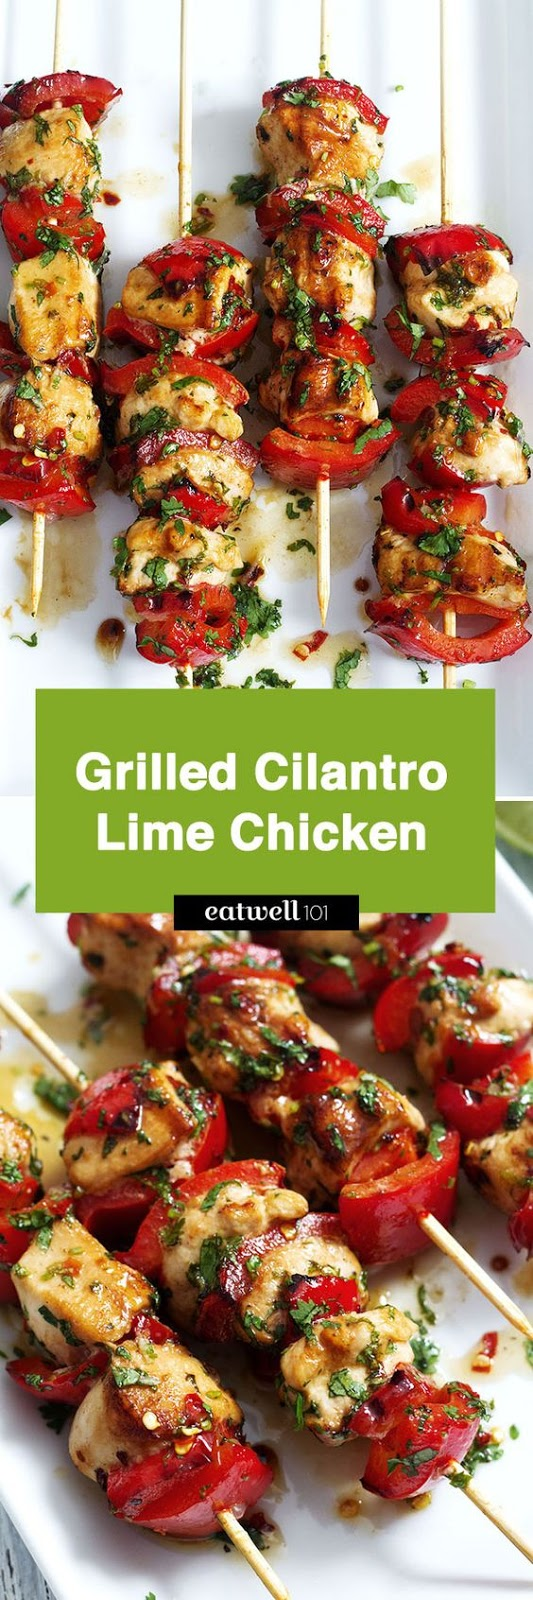 Best Grilled Honey Chili Lime Cilantro Chicken Recipe